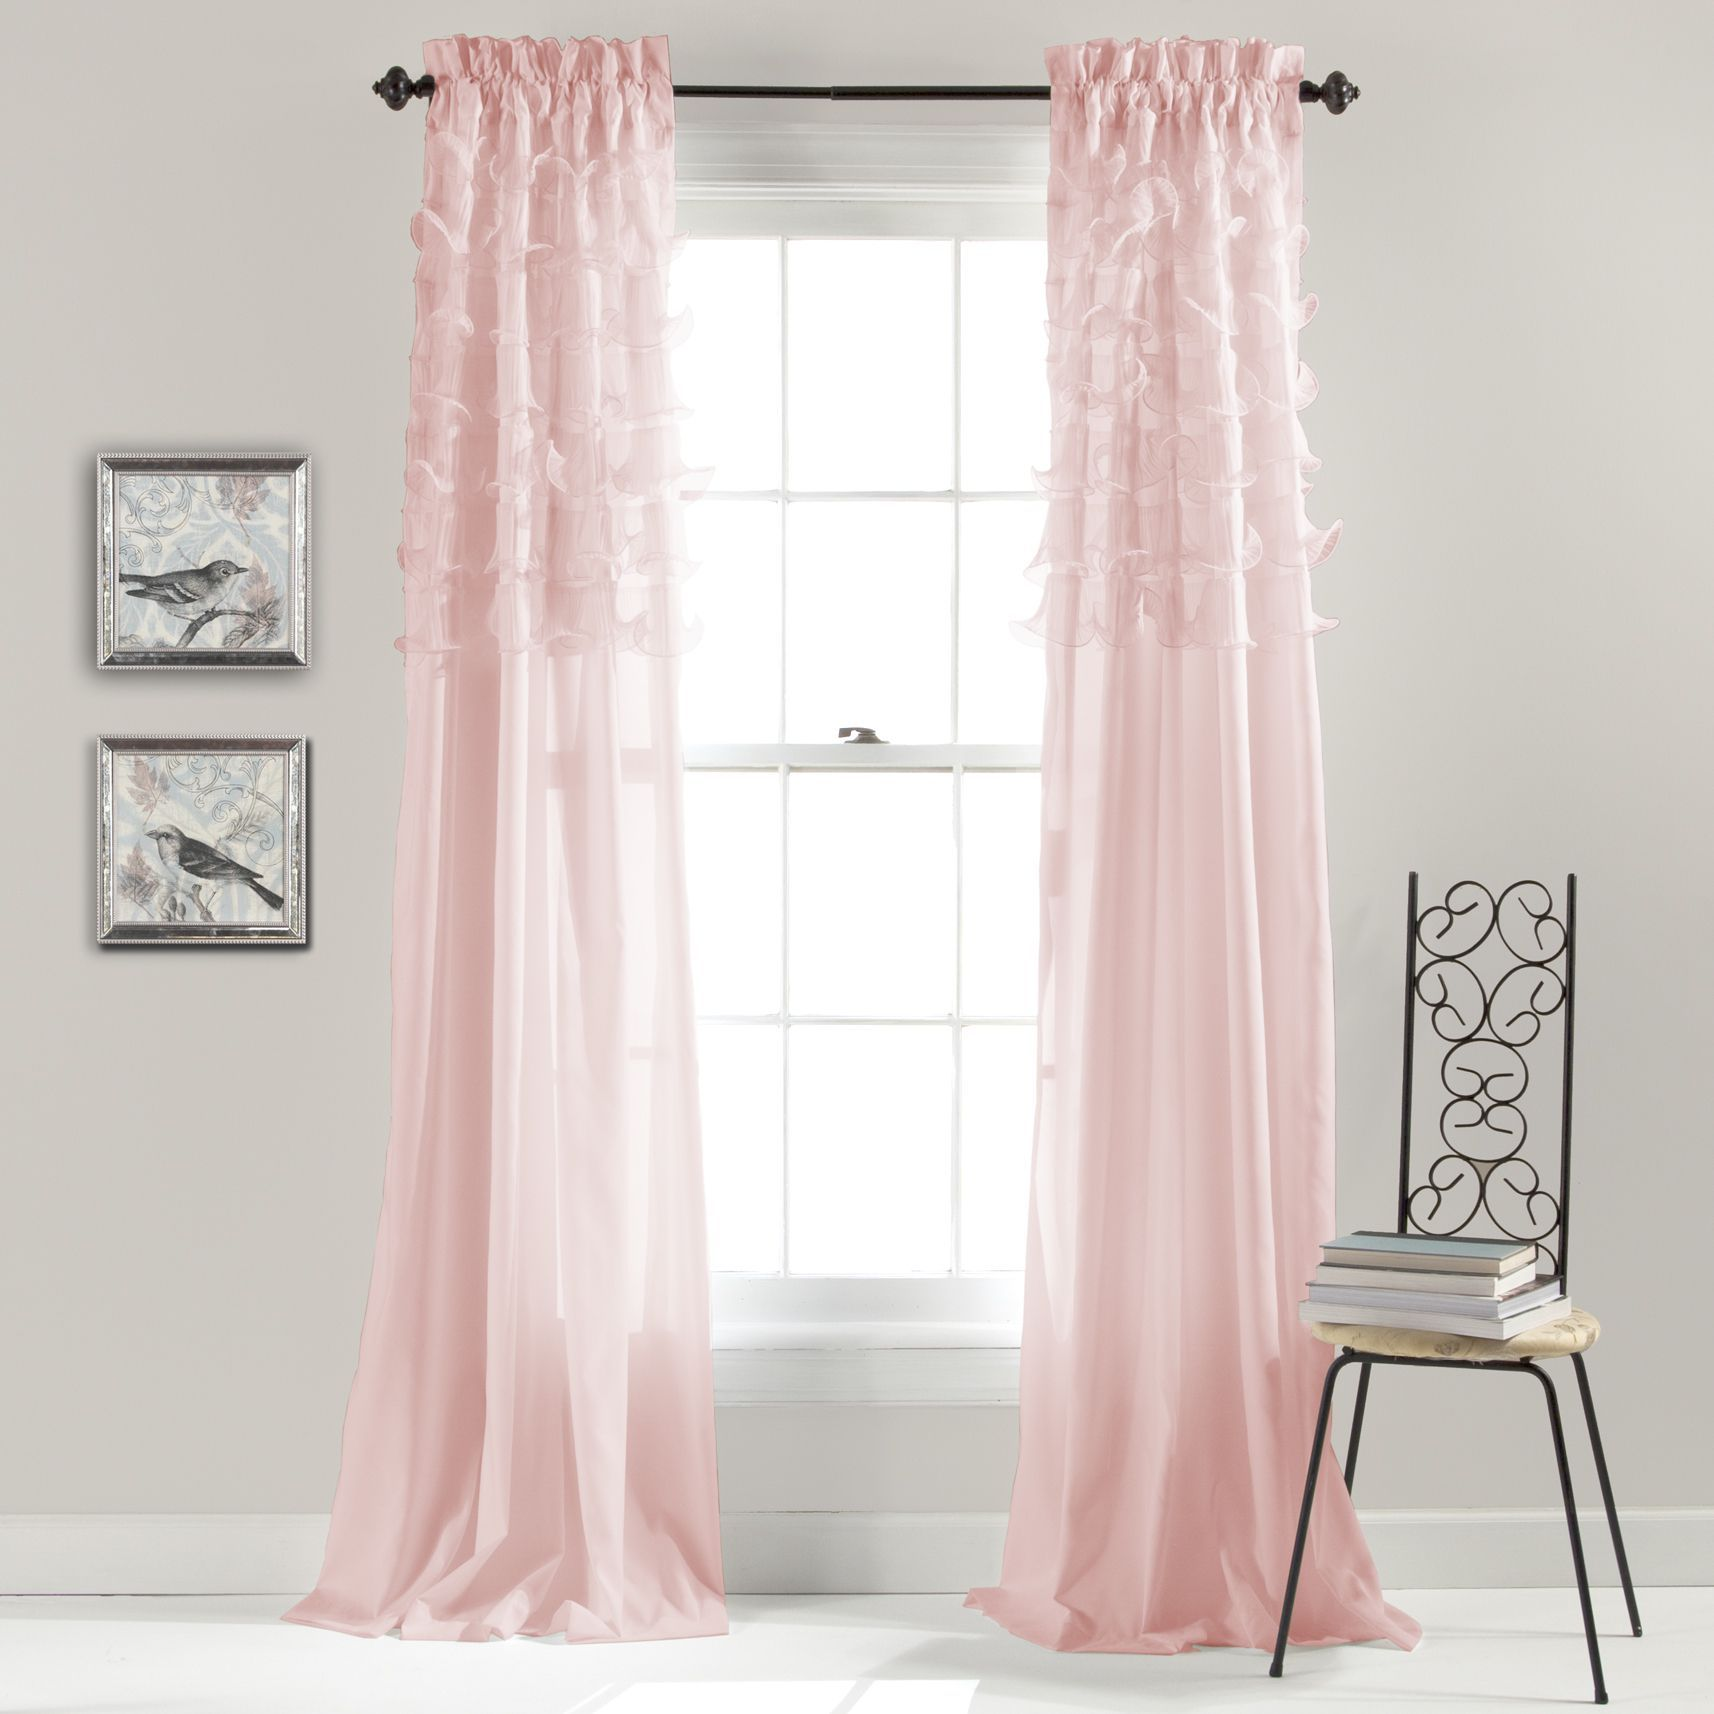 You Ll Love The Billowing Elegance That These Curtains